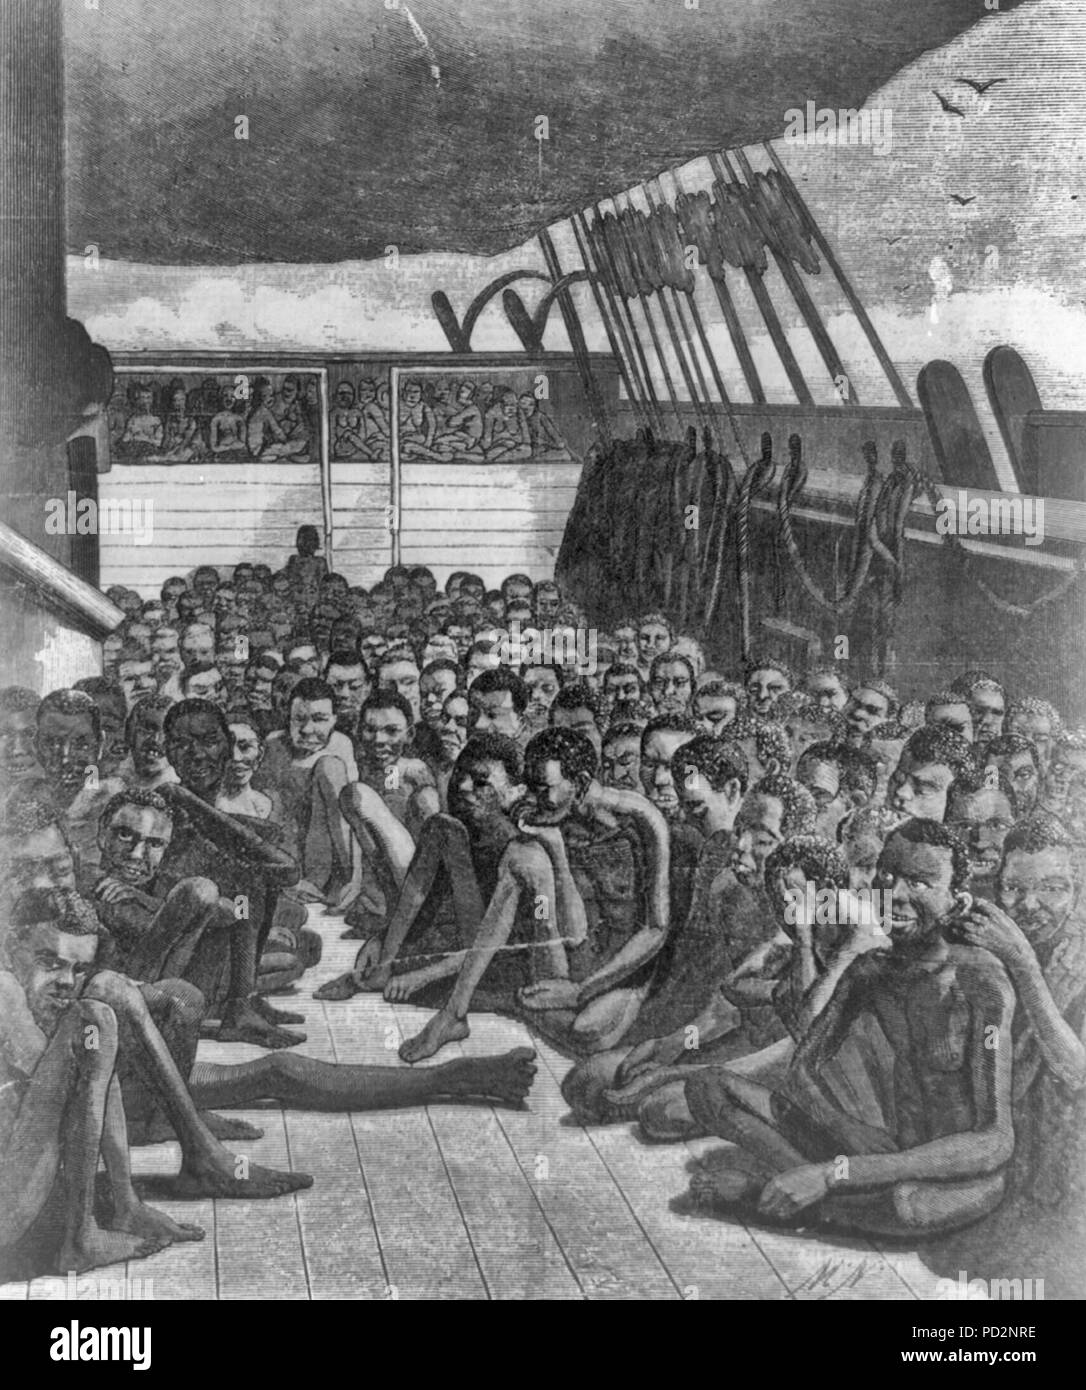 The Africans of the slave bark 'Wildfire'--The slave deck of the bark 'Wildfire,' brought into Key West on April 30, 1860 - African men crowded onto a lower deck; African women crowded on an upper deck. - Stock Image